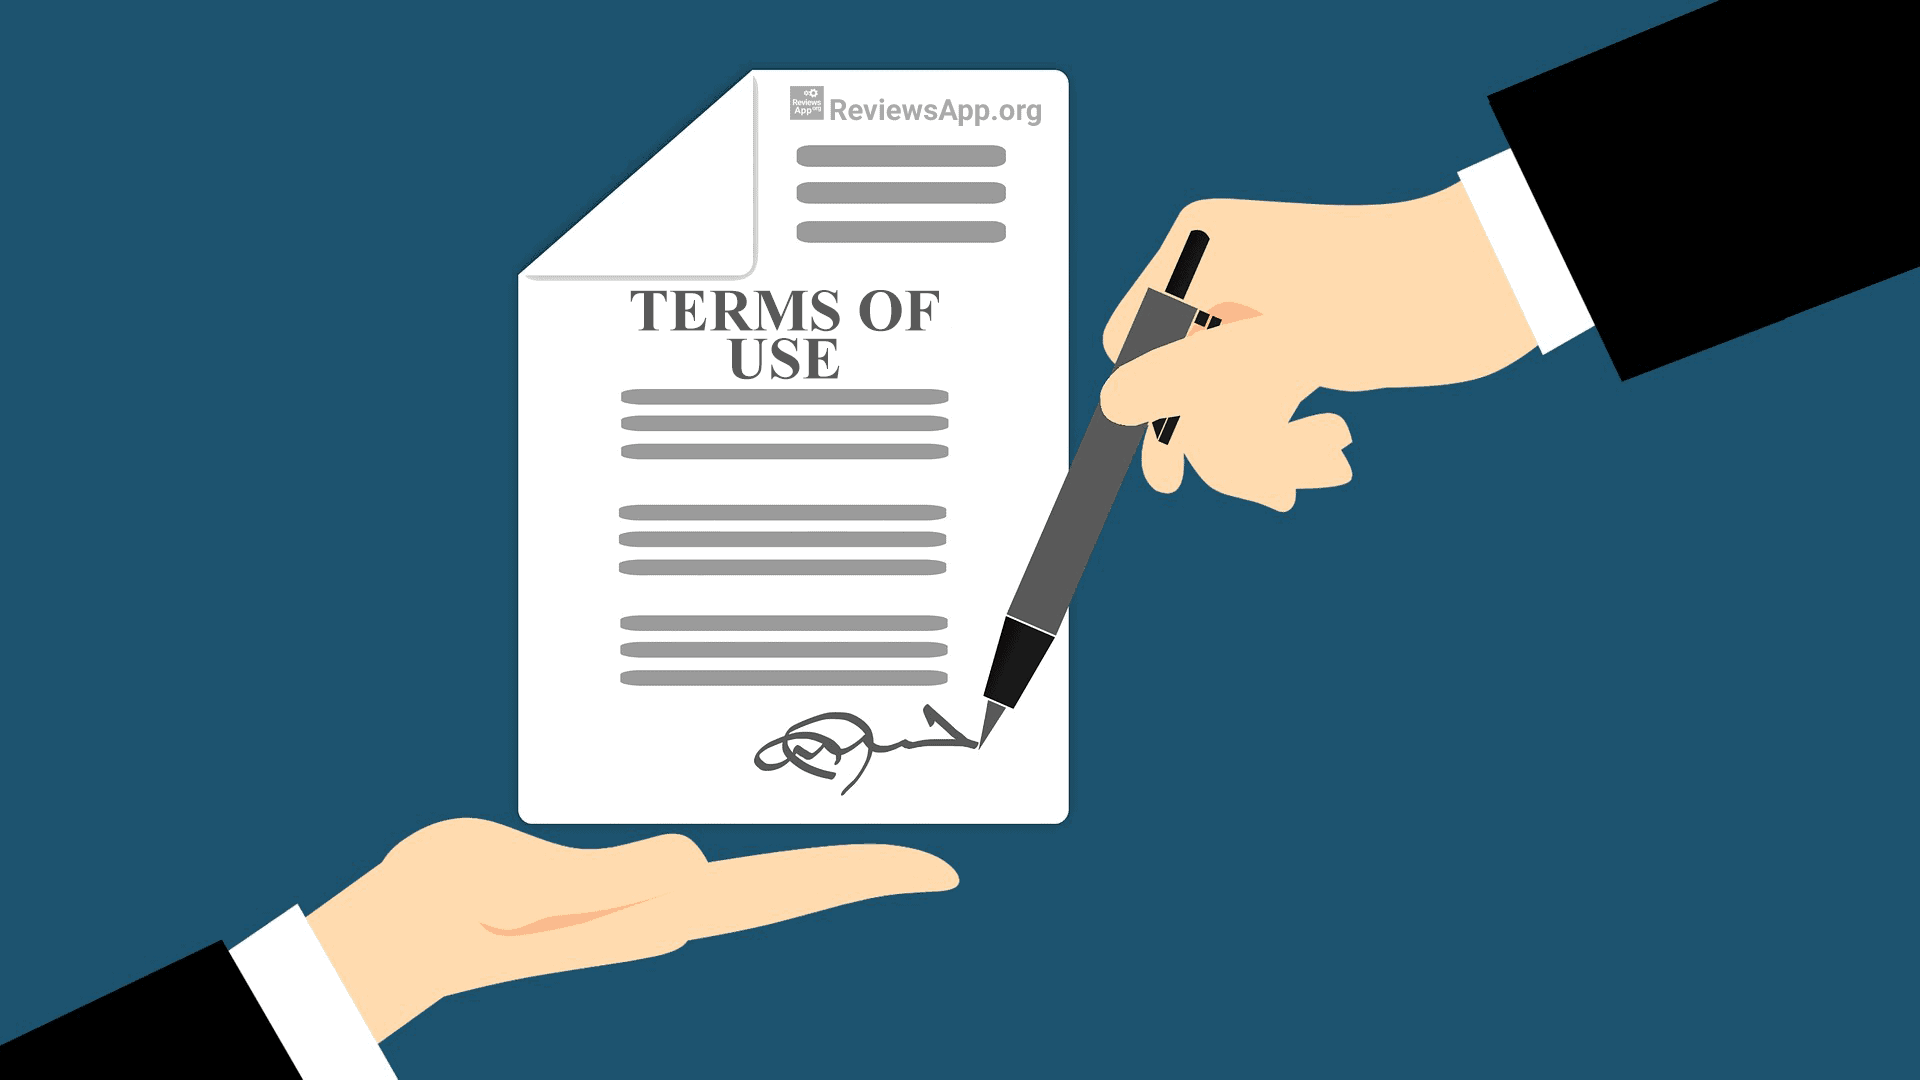 Reviews App - Terms of Use